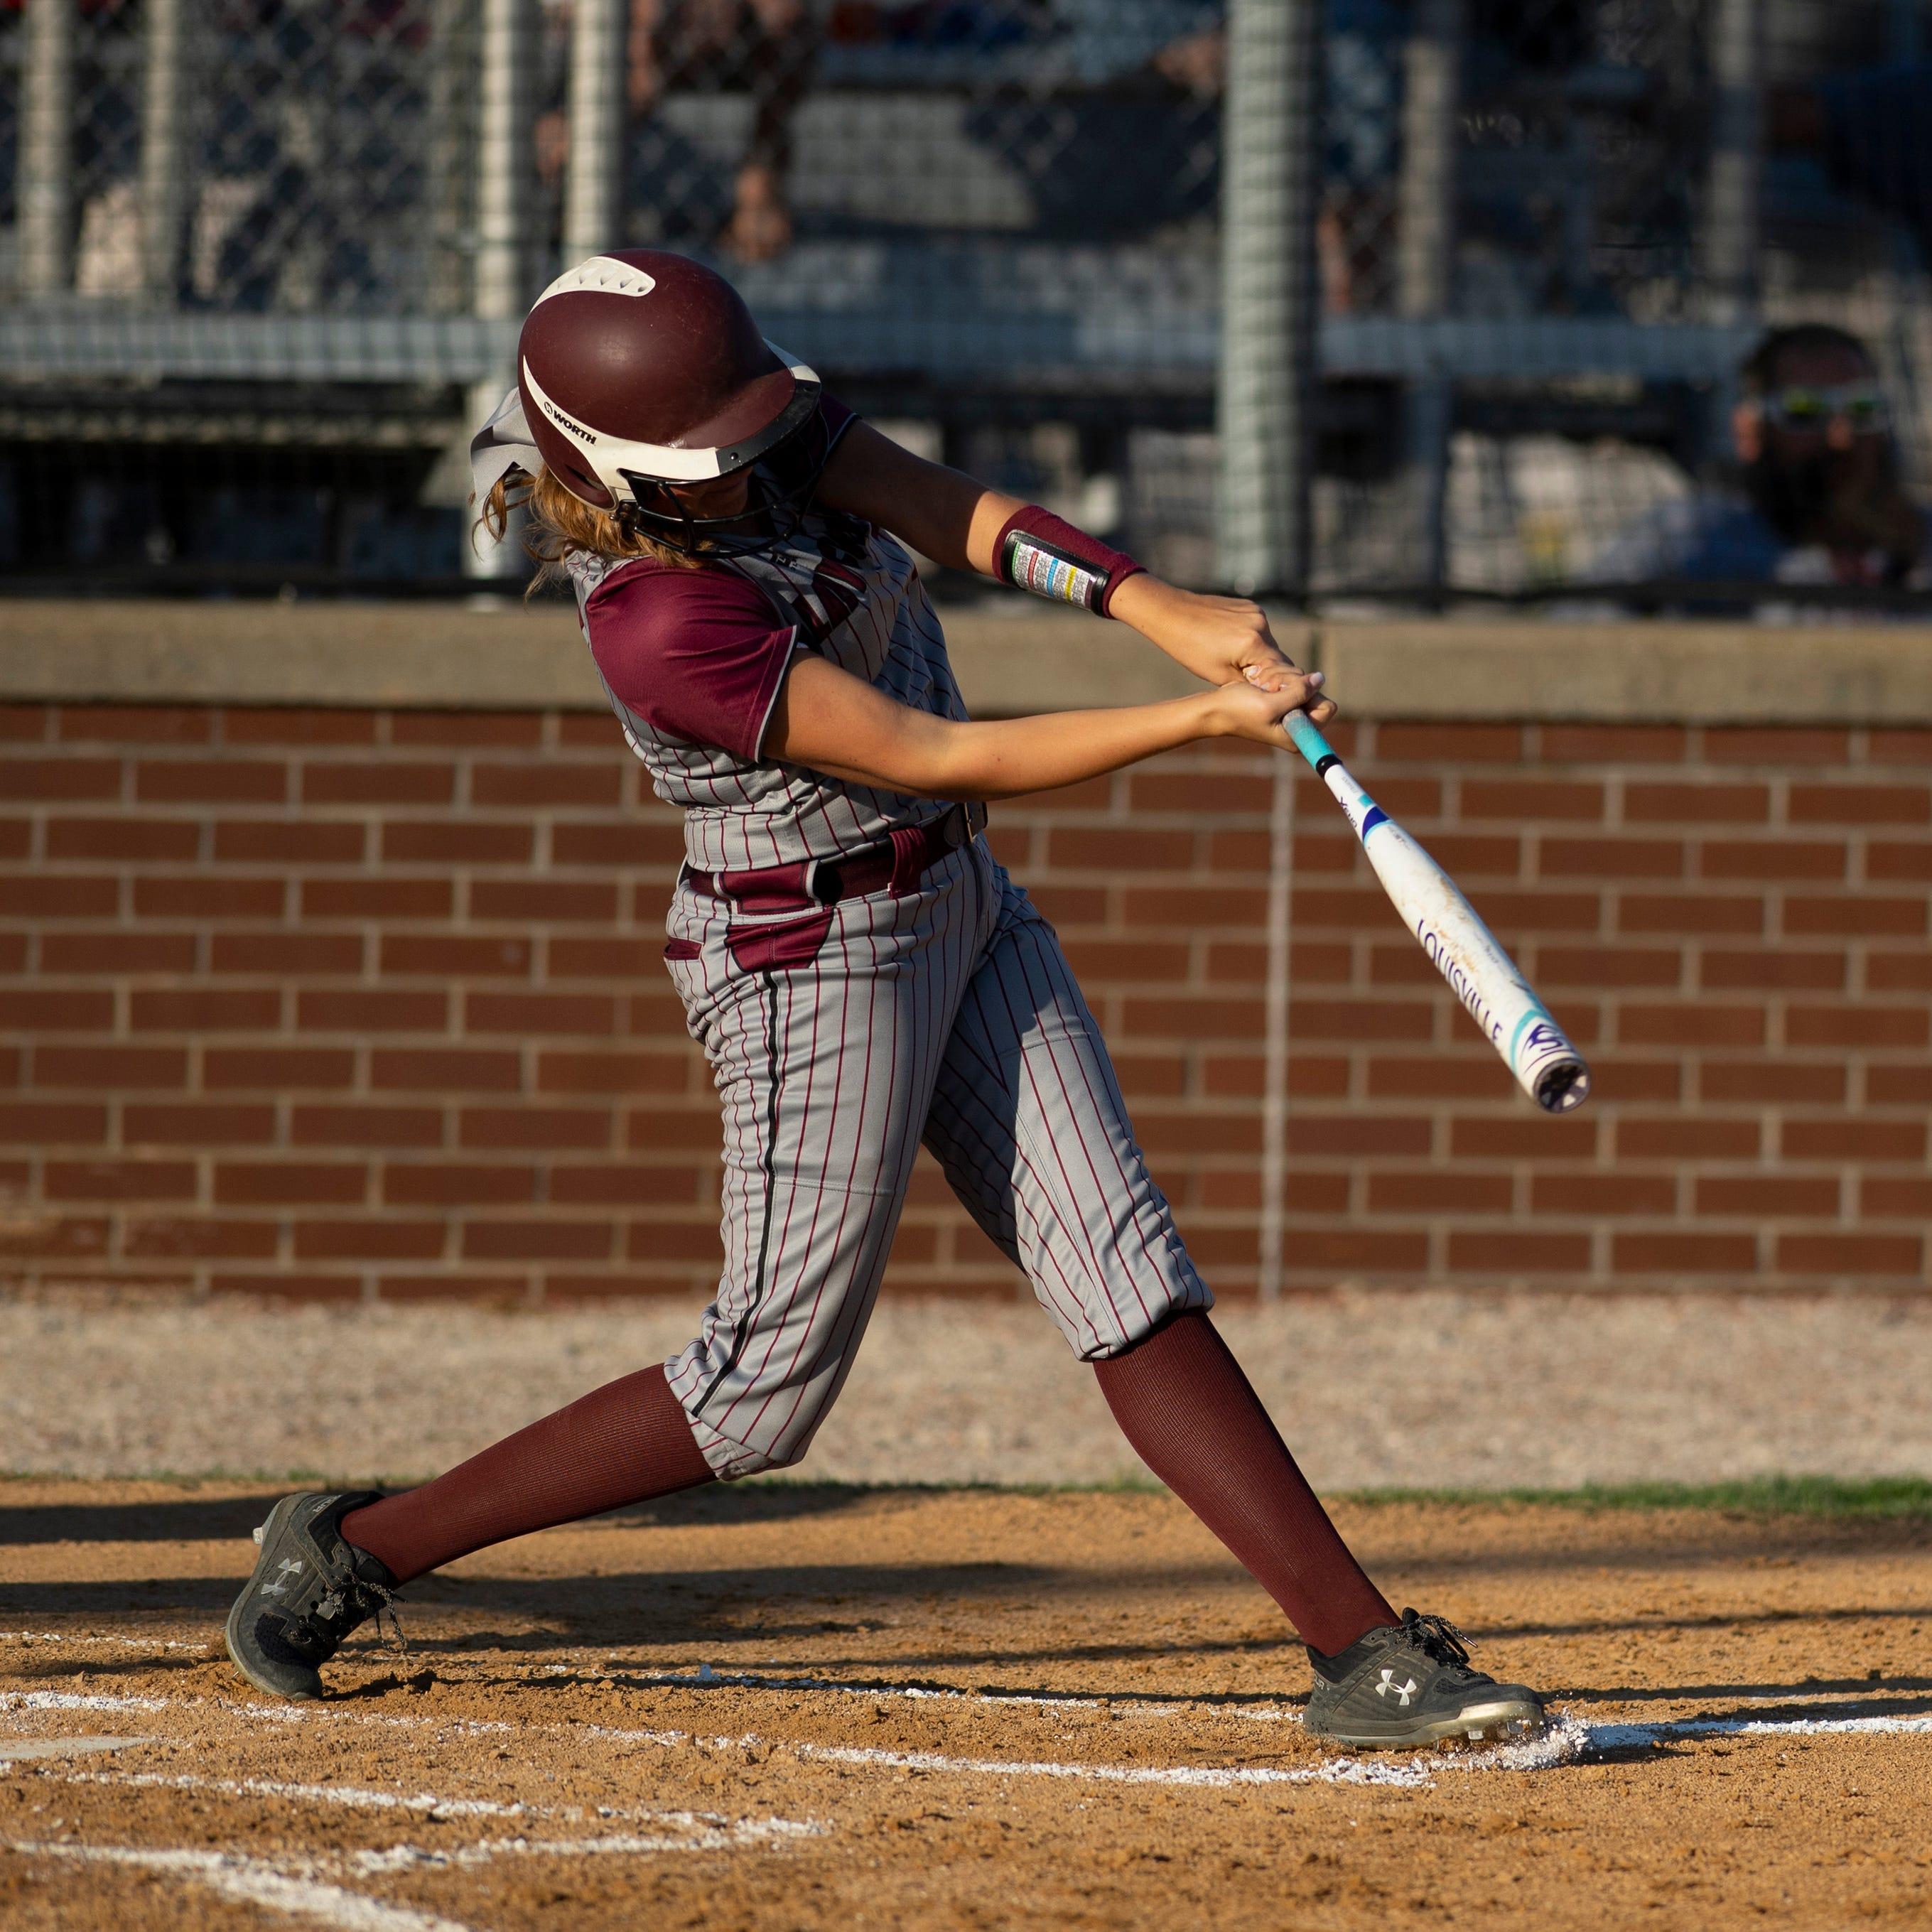 Hattie Hartman adjusts to new swing and new team in helping Henderson to strong start